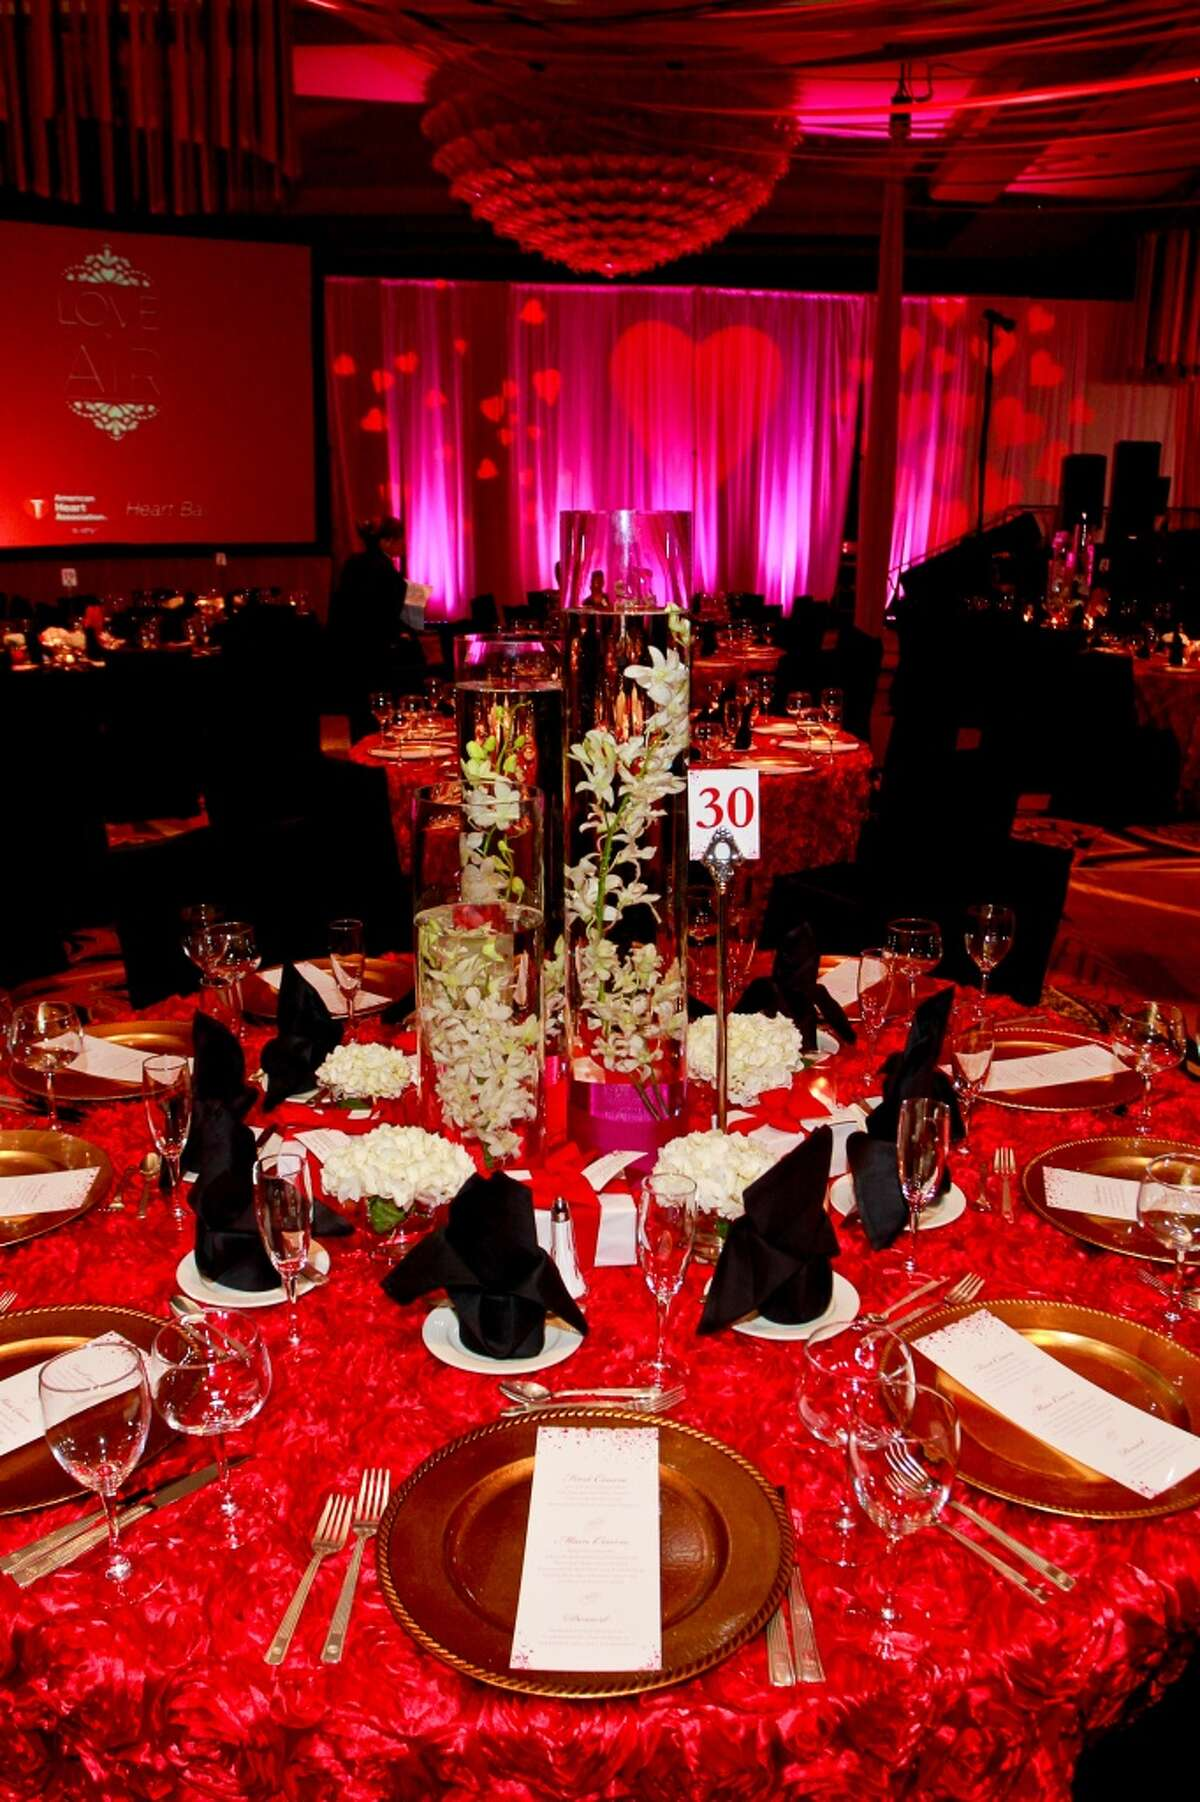 Decorations for the Houston Heart Ball benefiting American Heart Association